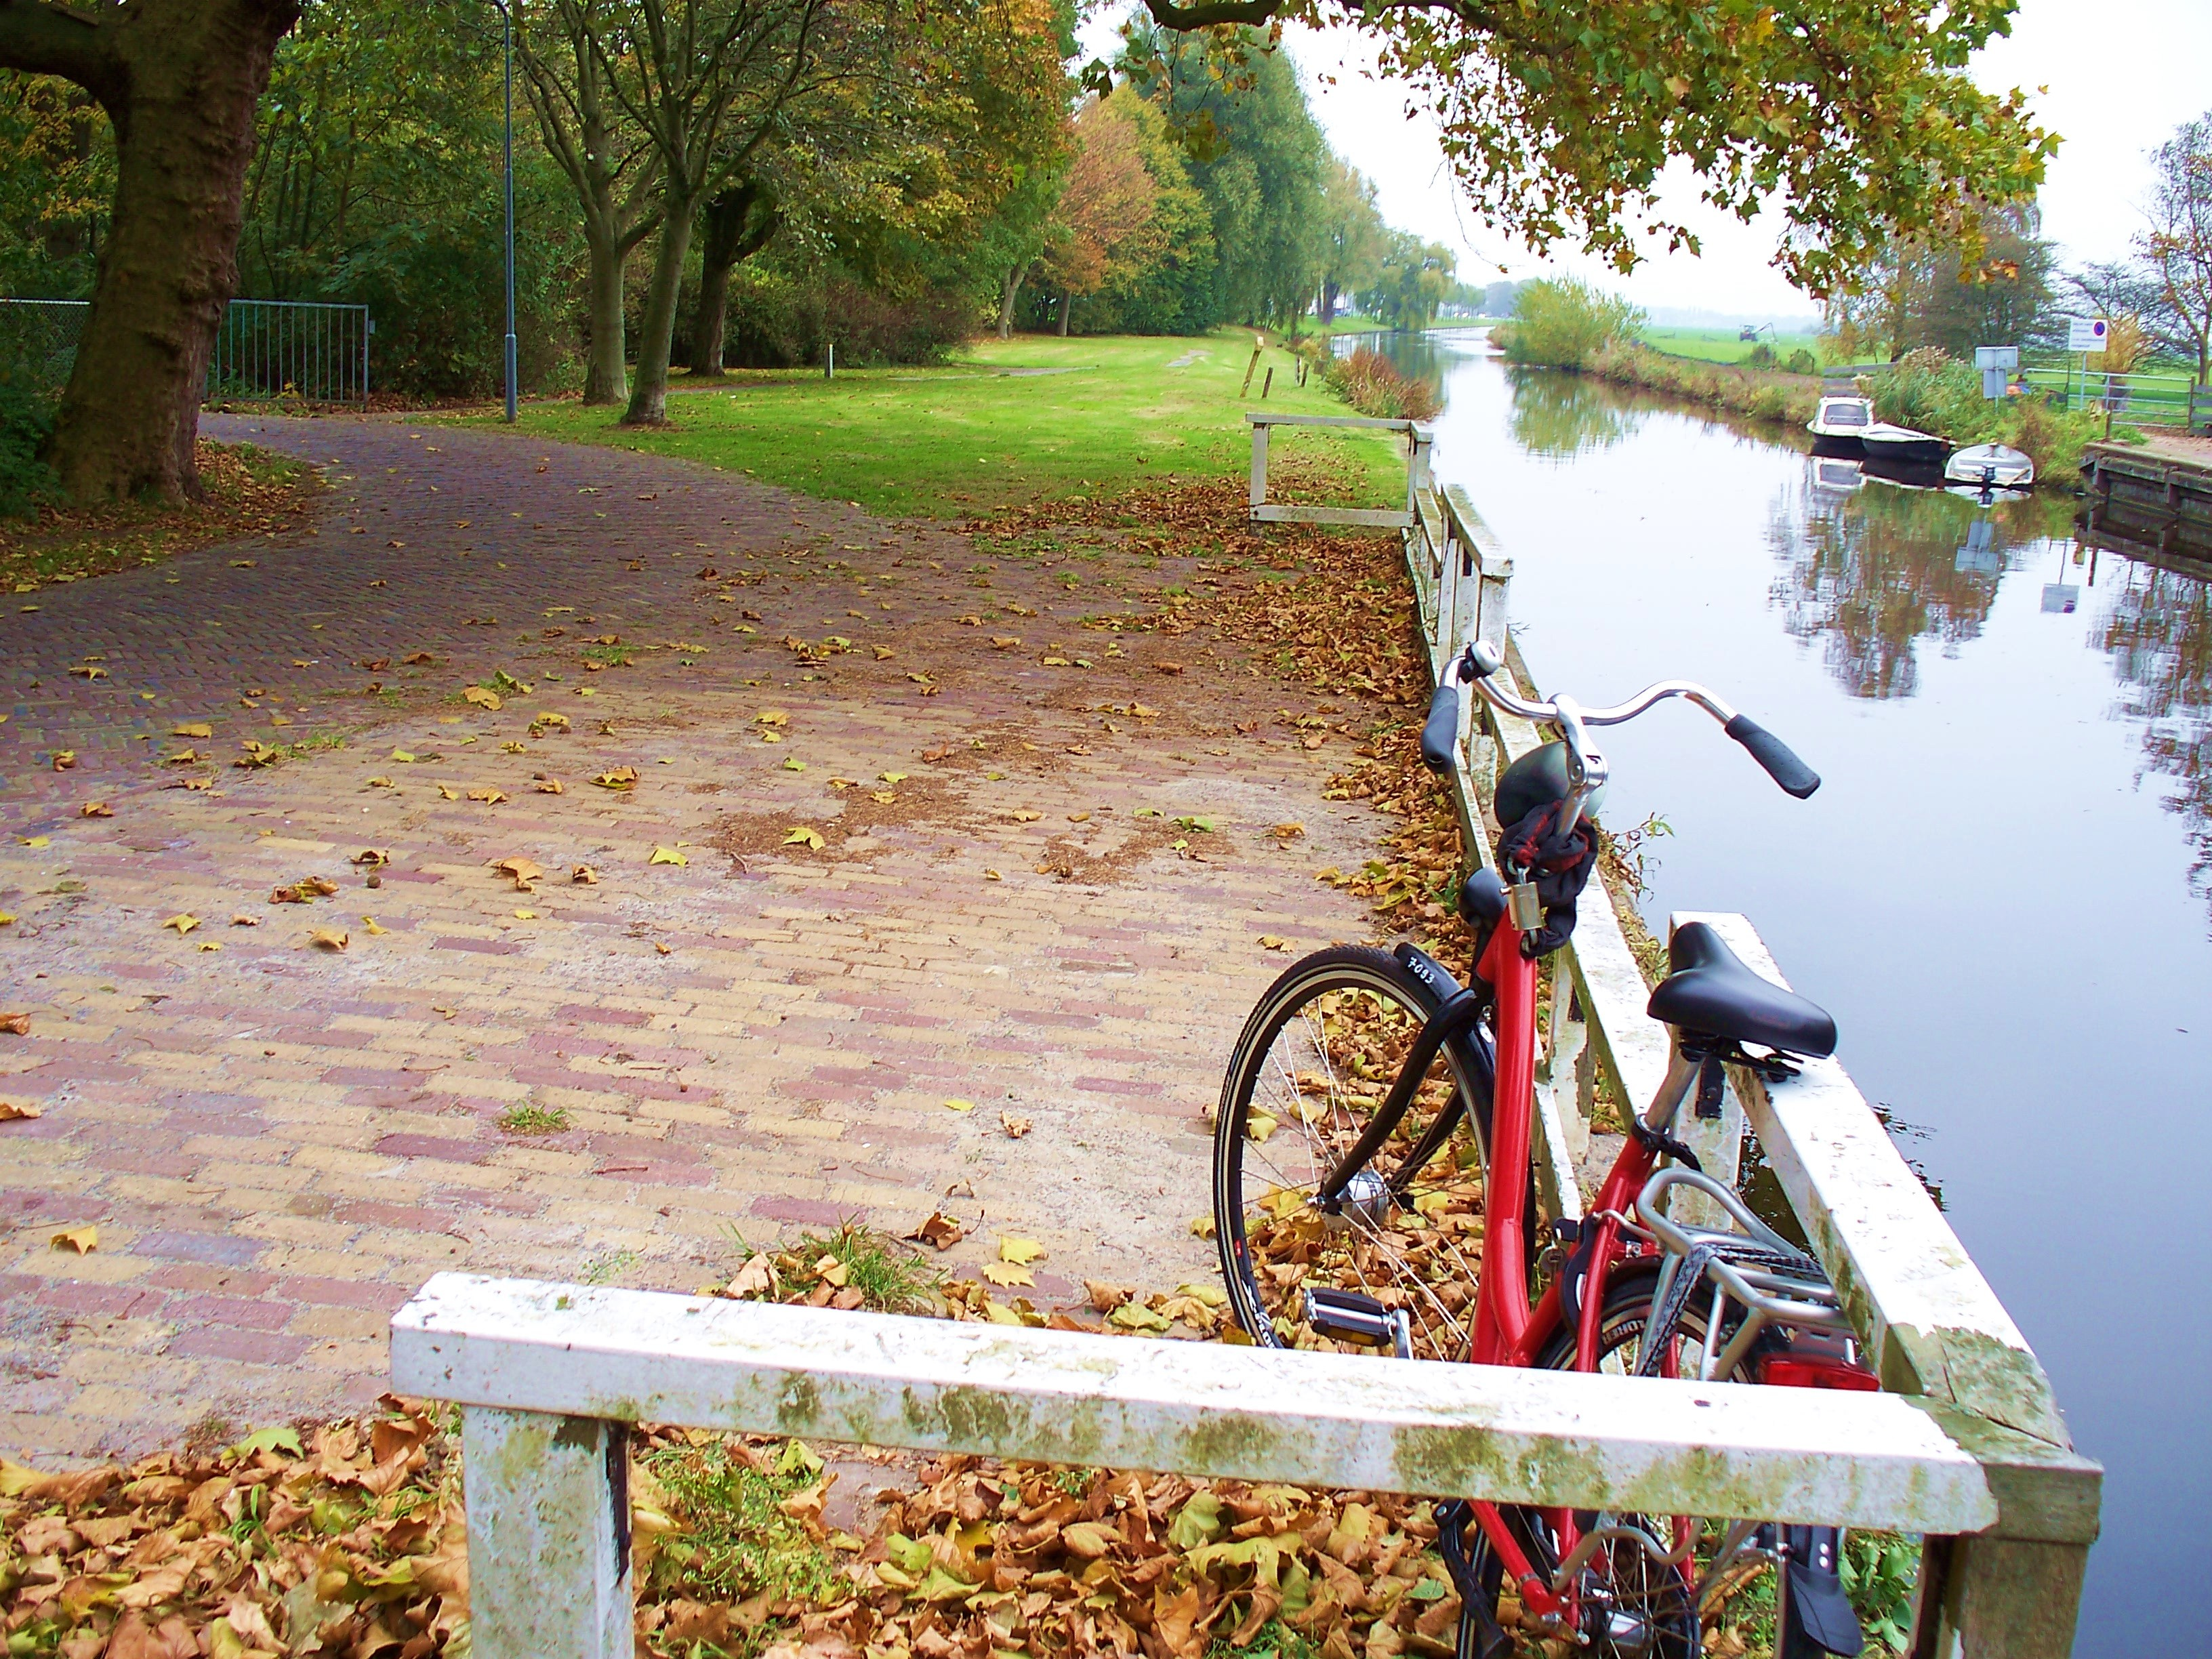 A boat, a canal, and a bike. Let the road stretch on forever.